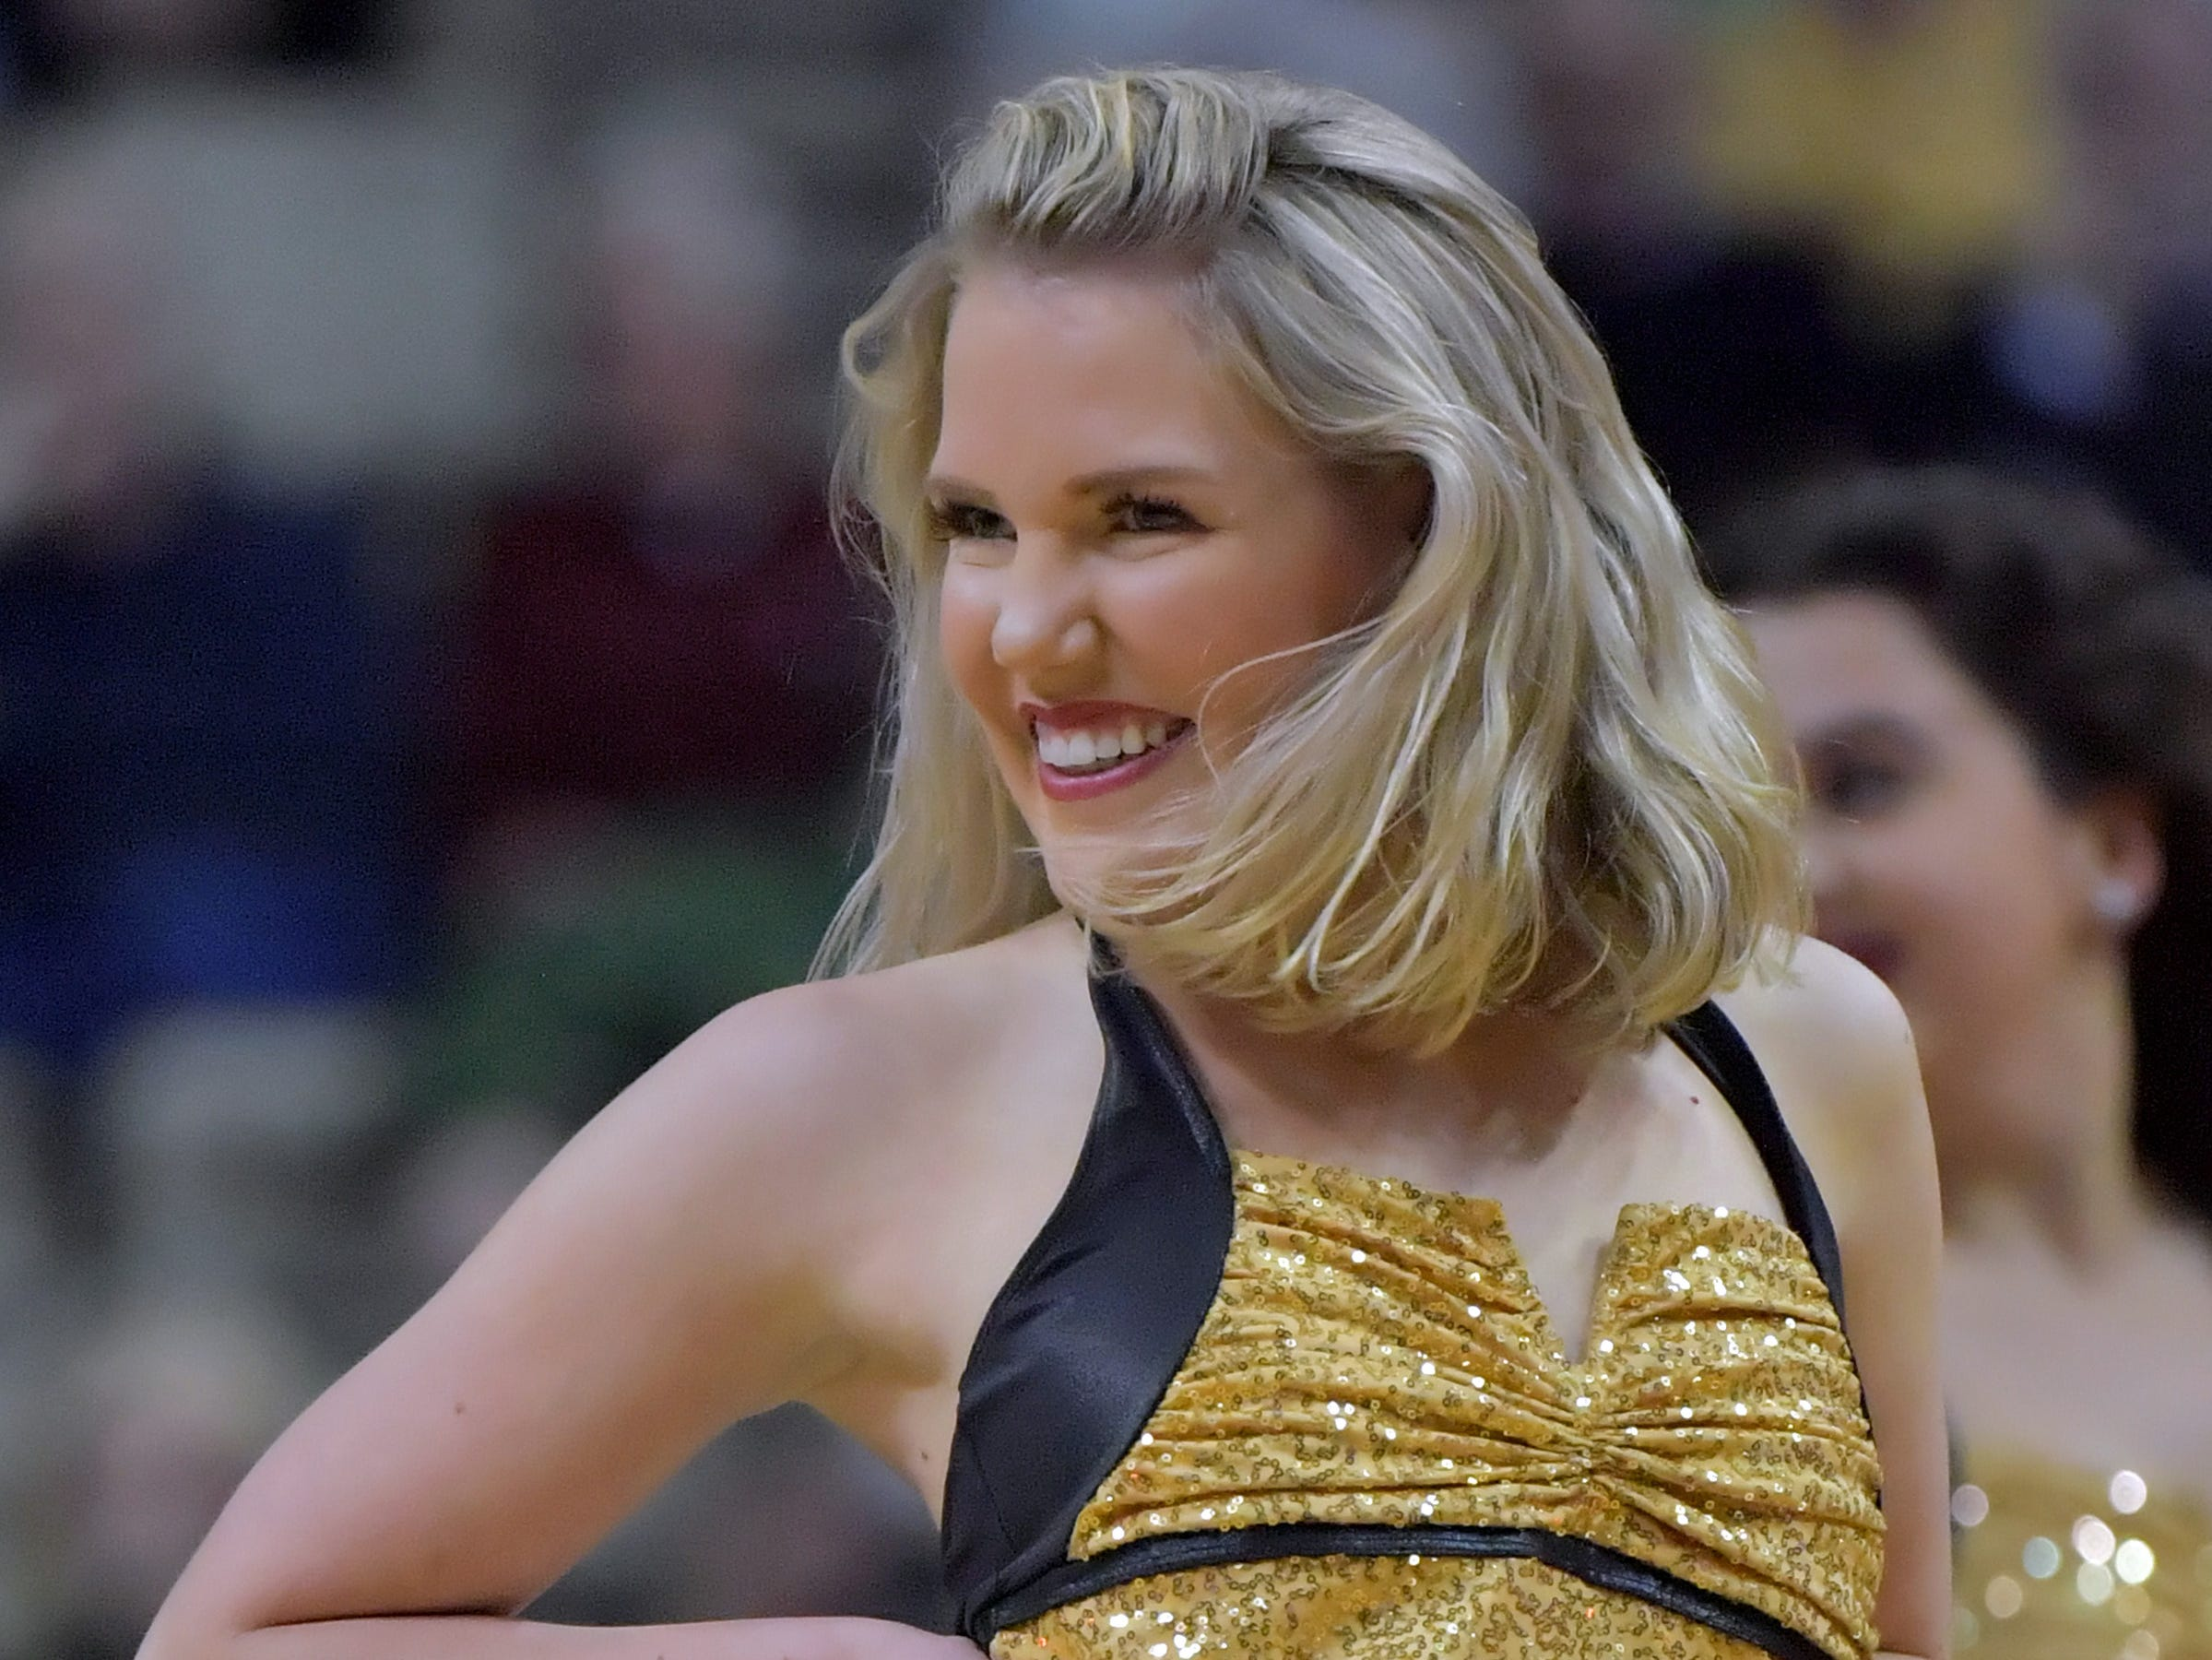 Feb 9, 2019; Nashville, TN, USA; Vanderbilt Commodores dance team member performs during the second half against the Alabama Crimson Tide at Memorial Gymnasium. Alabama won 77-67. Mandatory Credit: Jim Brown-USA TODAY Sports